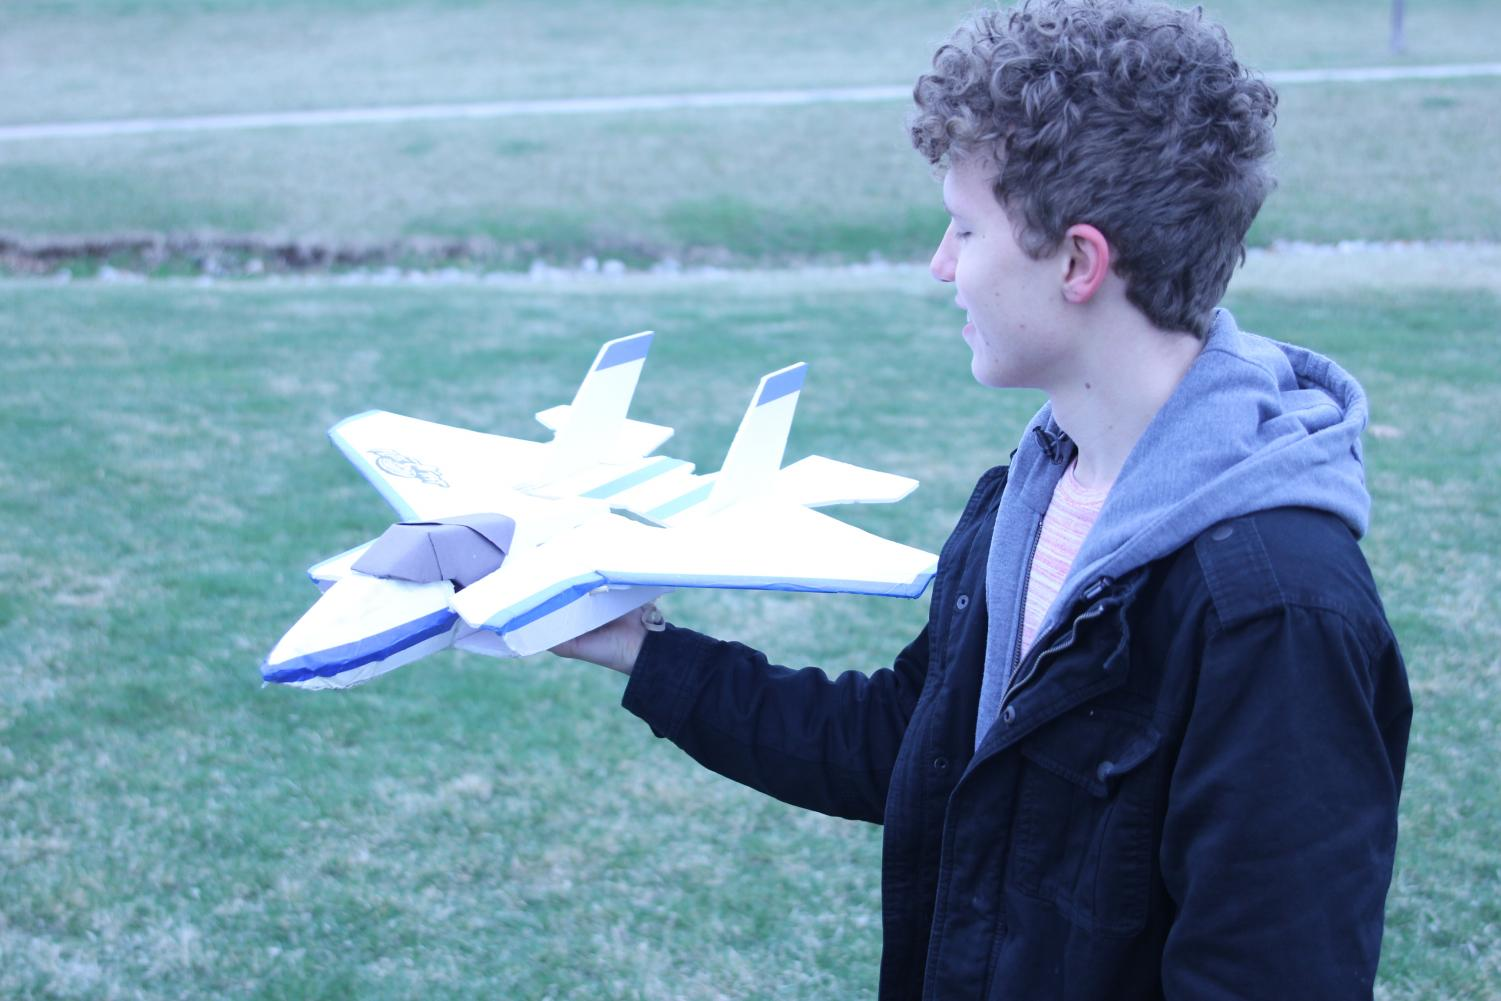 Senior Zach King prepares to launch the plane with his arm in an attempt to create lift on Sunday, March 25.